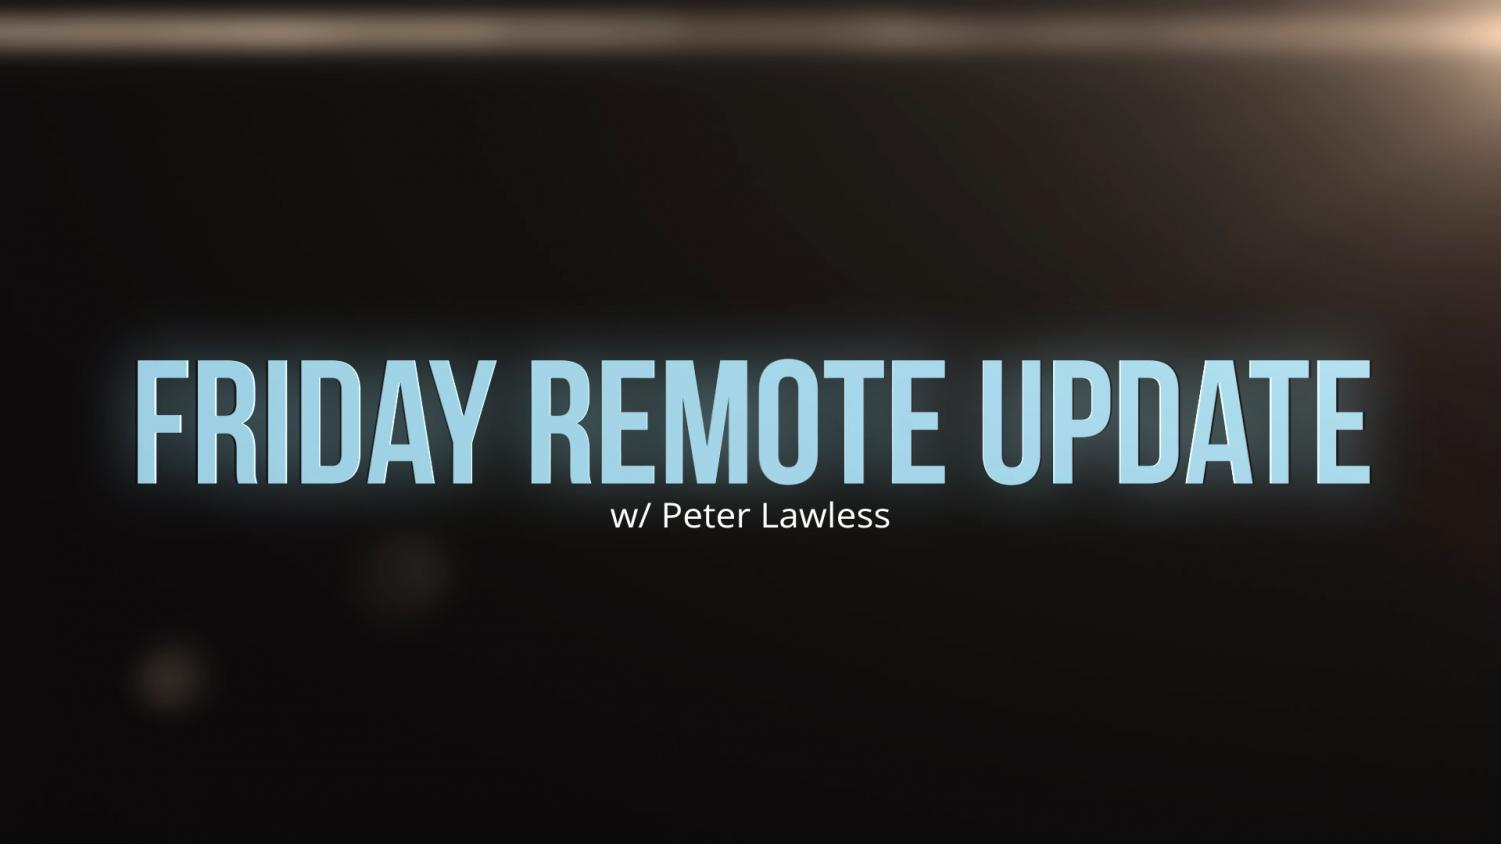 Friday Remote Update / March 27